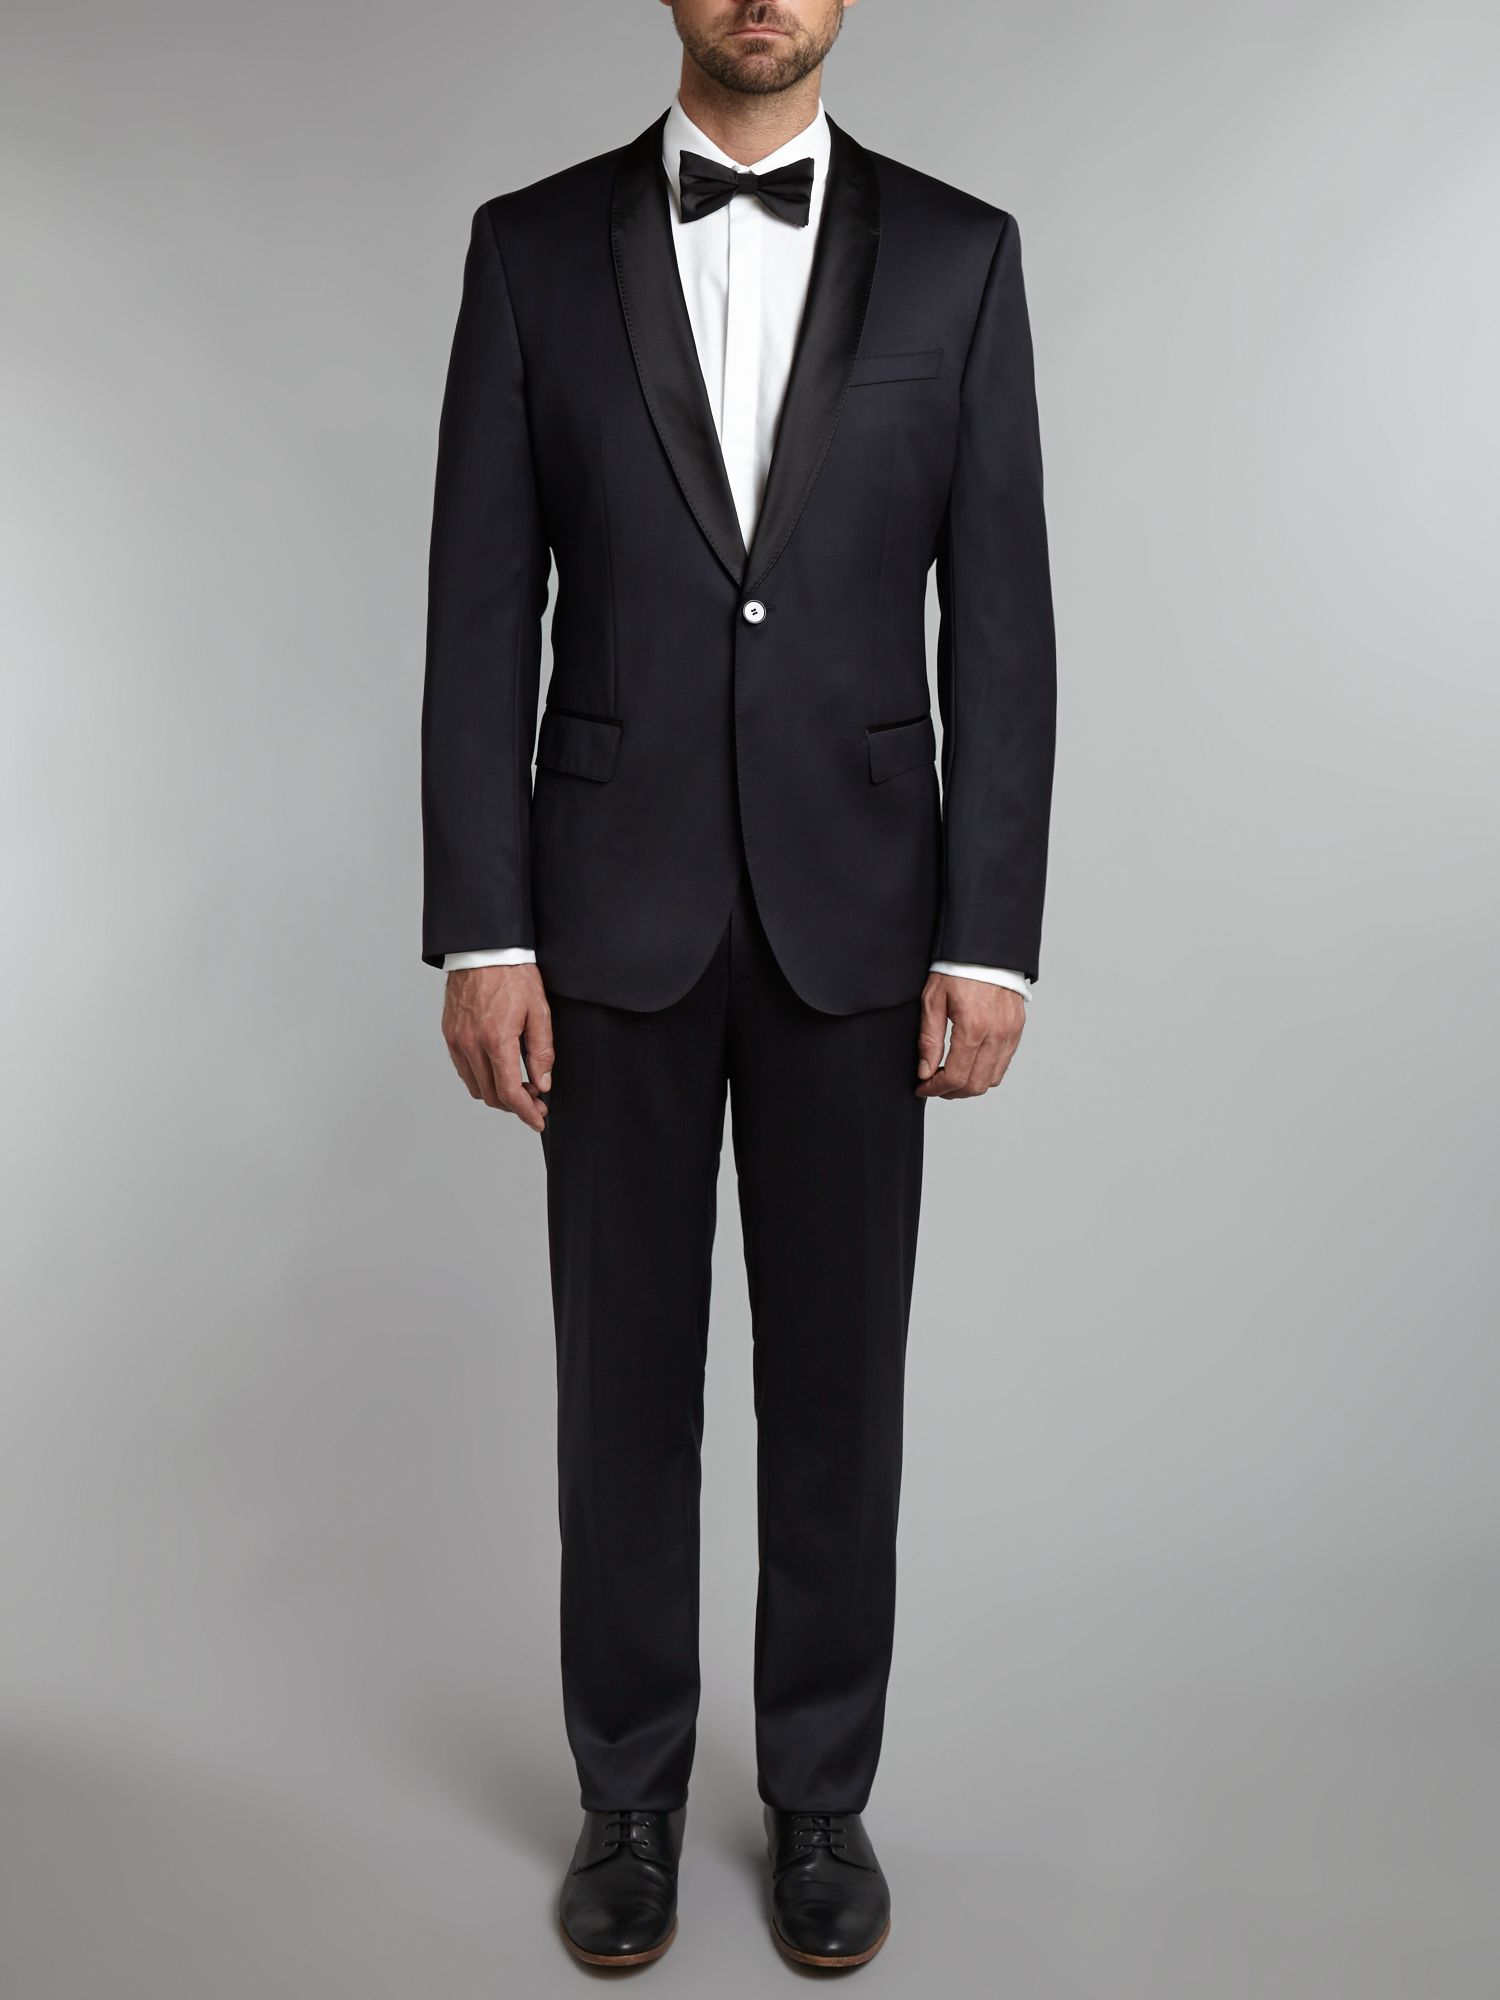 Hyats/Glare shawl collar slim fit dinner suit